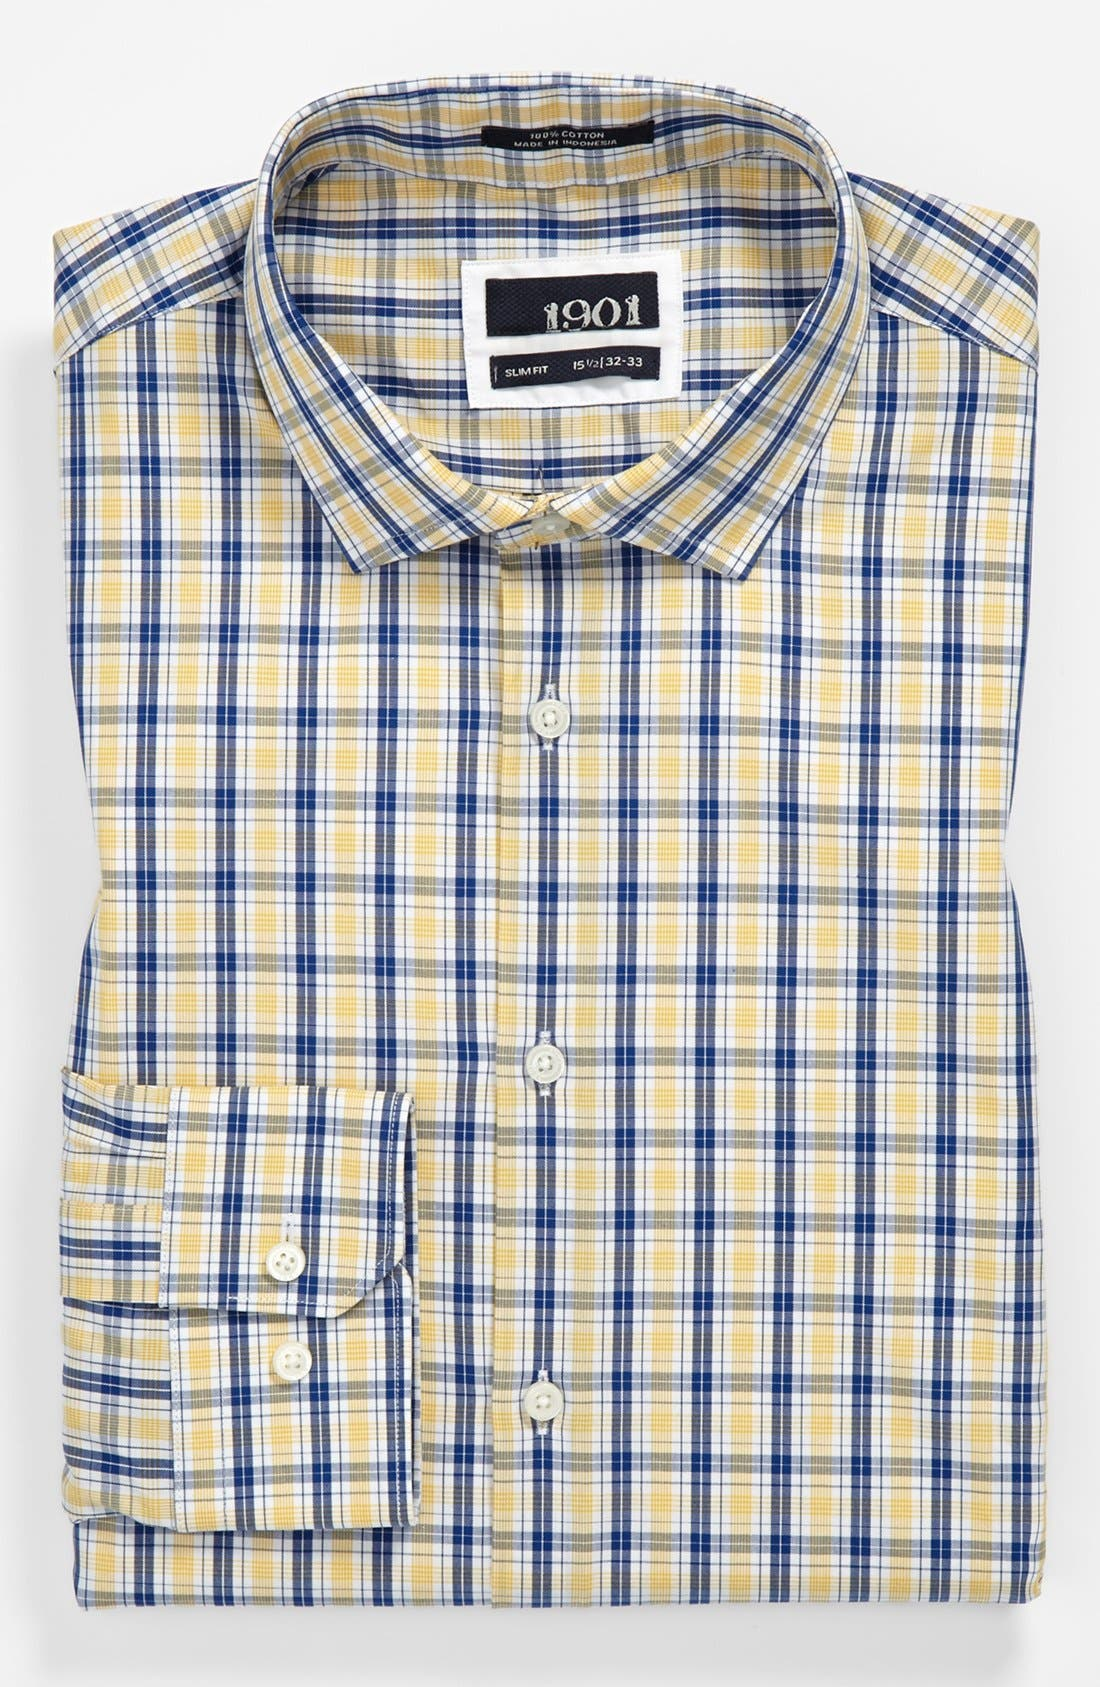 Main Image - 1901 Slim Fit Plaid Dress Shirt